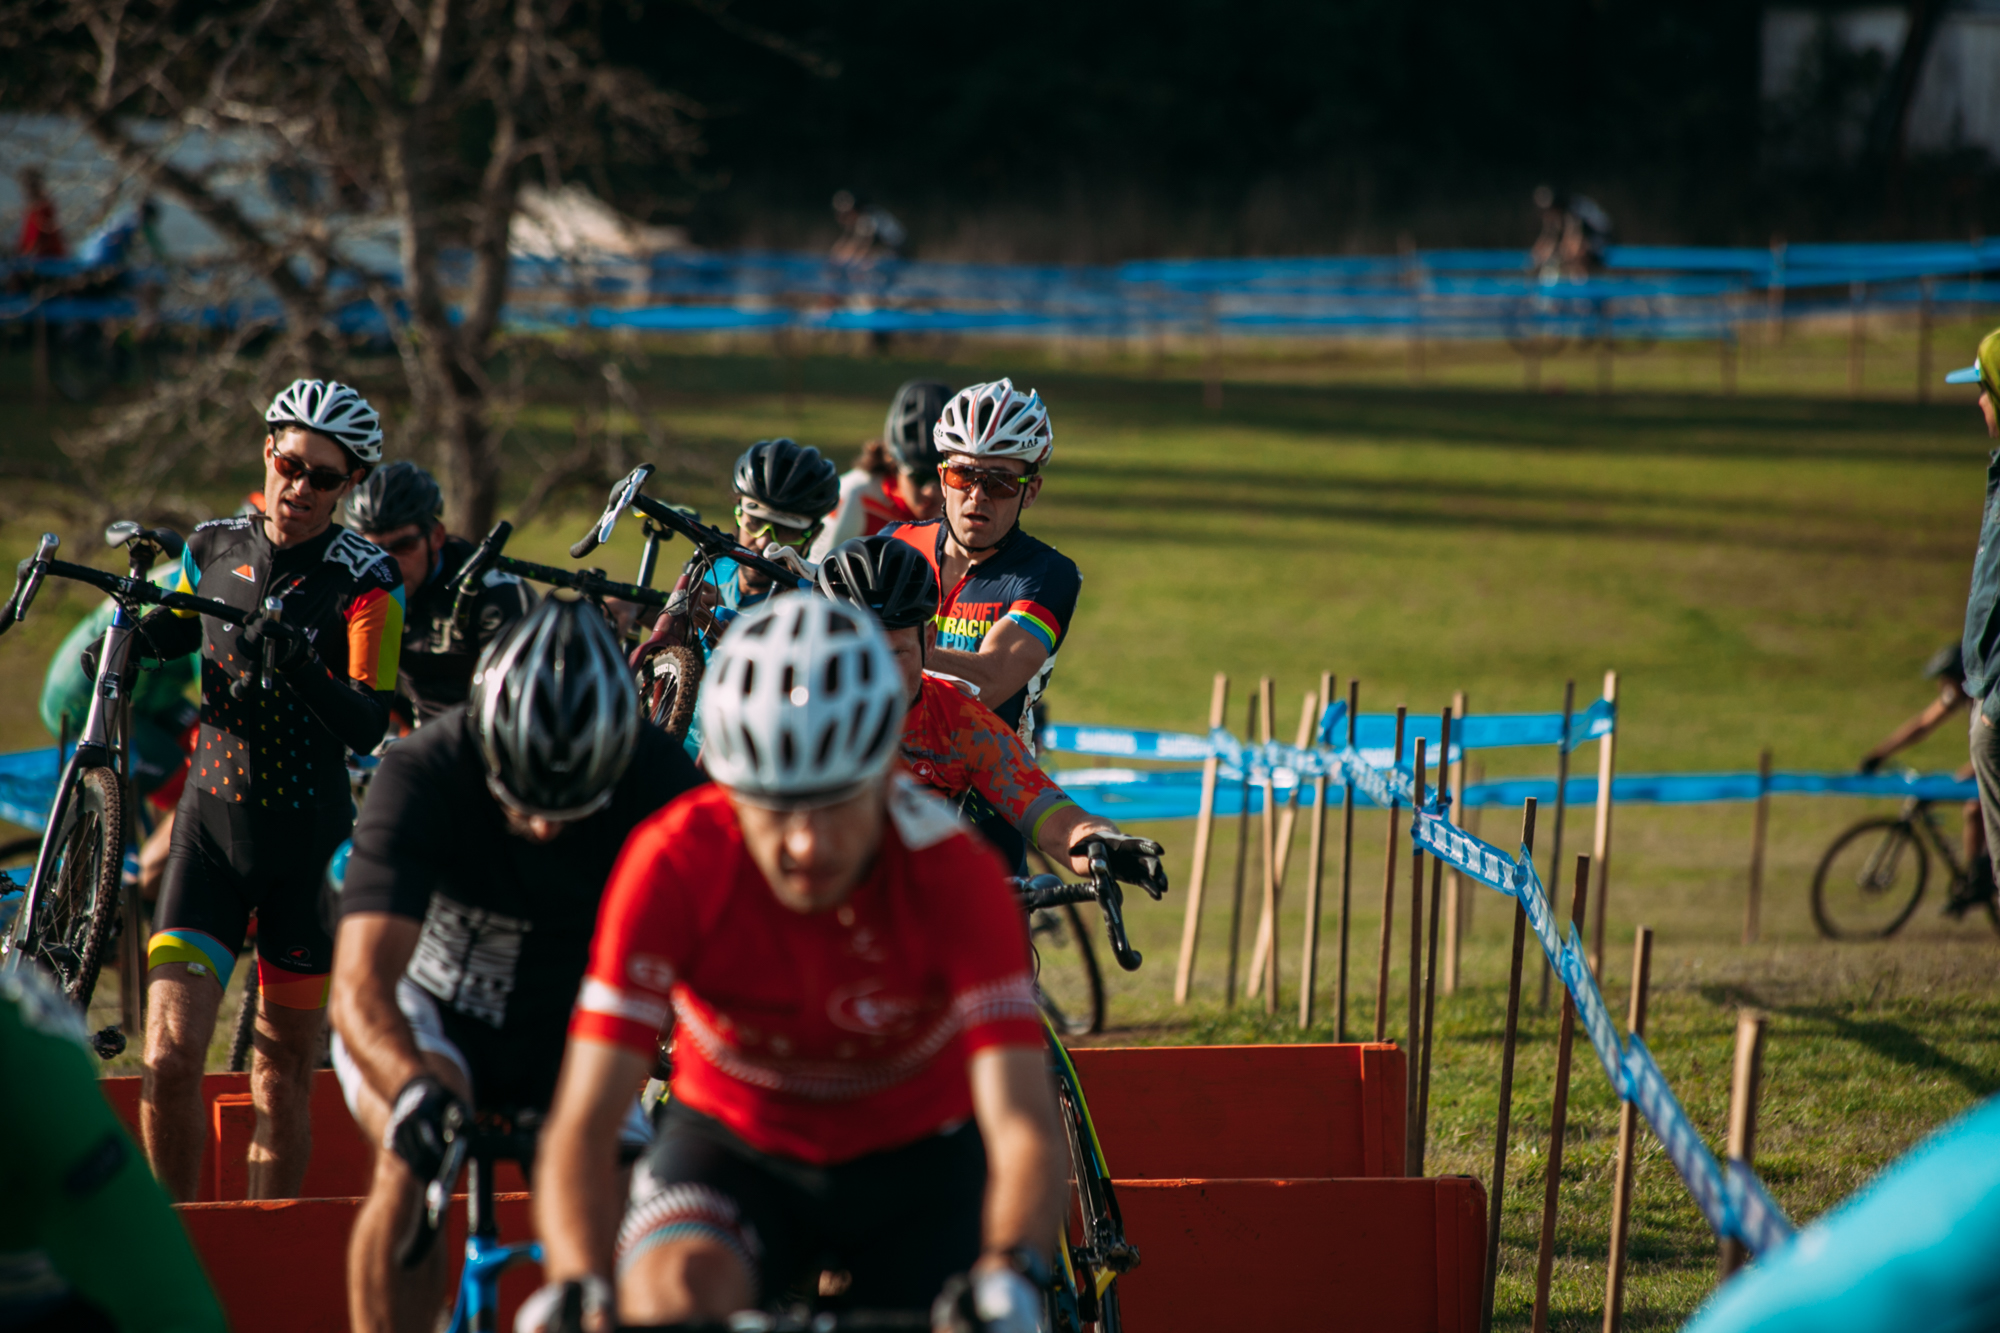 Cyclocross18_CCCX_RainierHS-66-mettlecycling.jpg